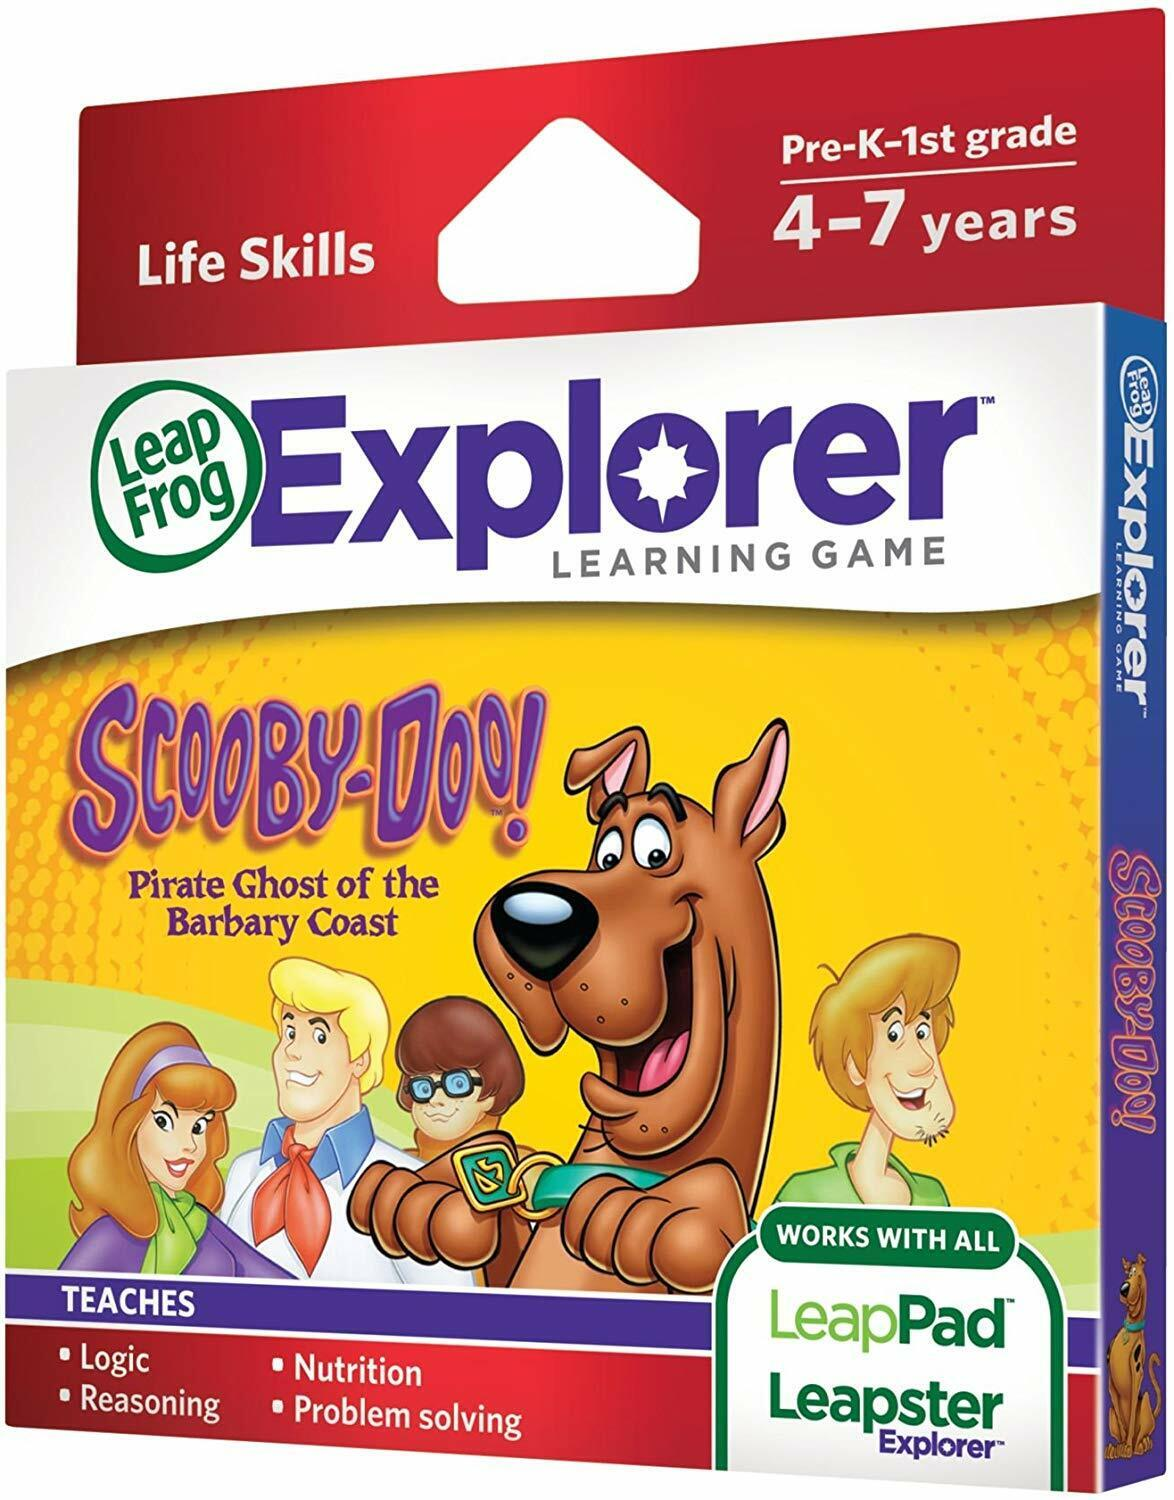 LeapFrog Scooby-Doo! Pirate Ghost of the Barbary Coast Learn